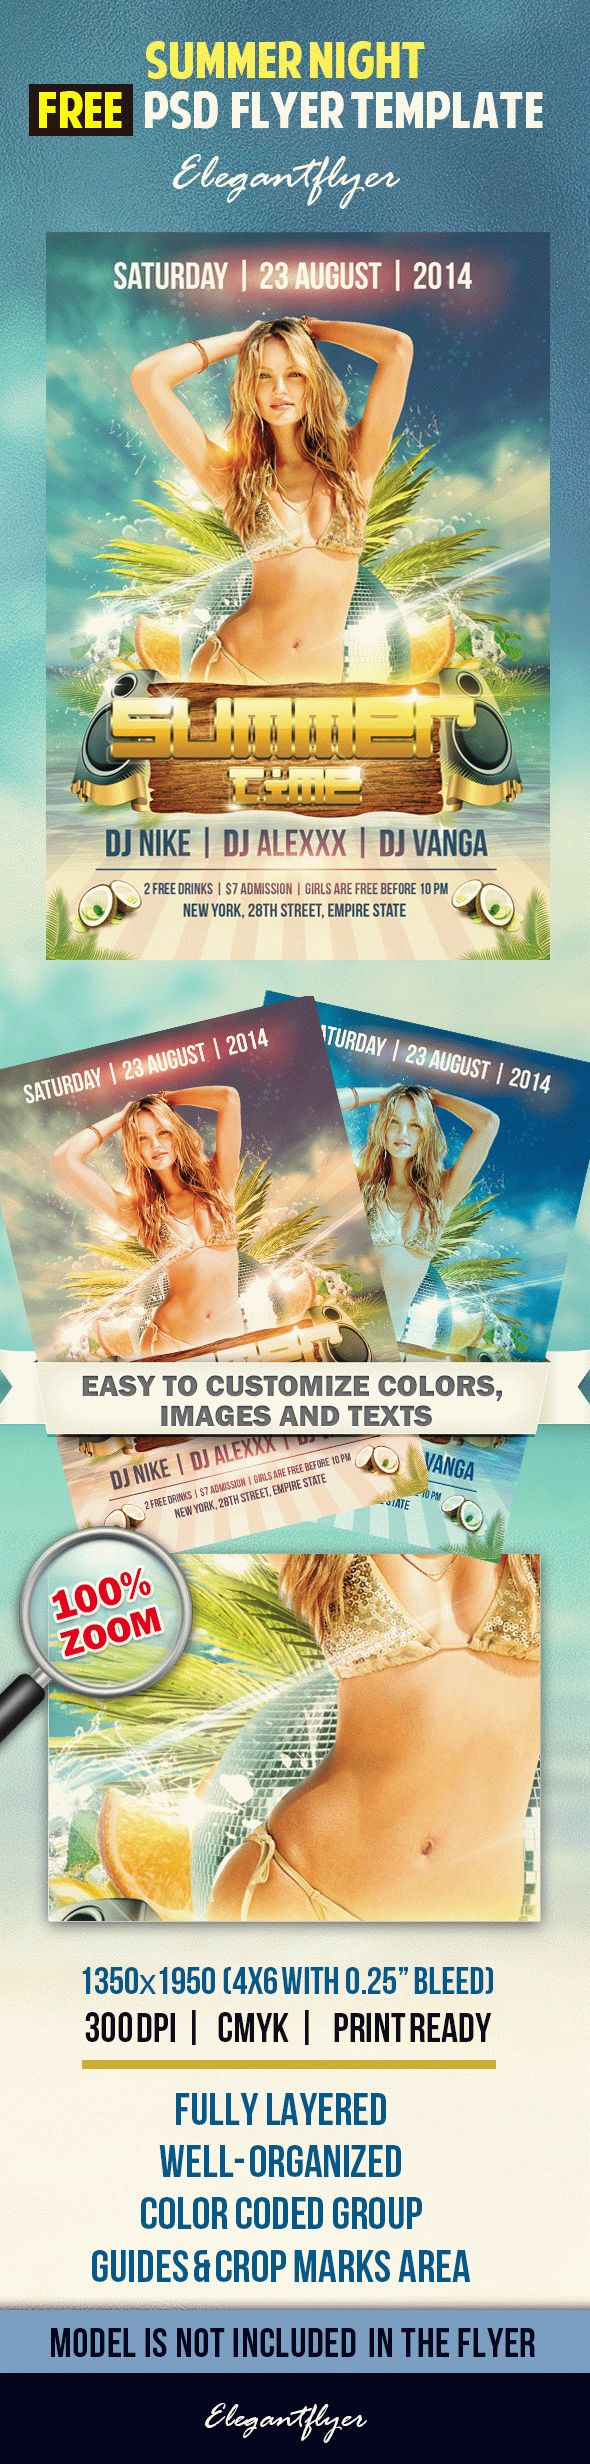 Summer time – Free Flyer PSD Template